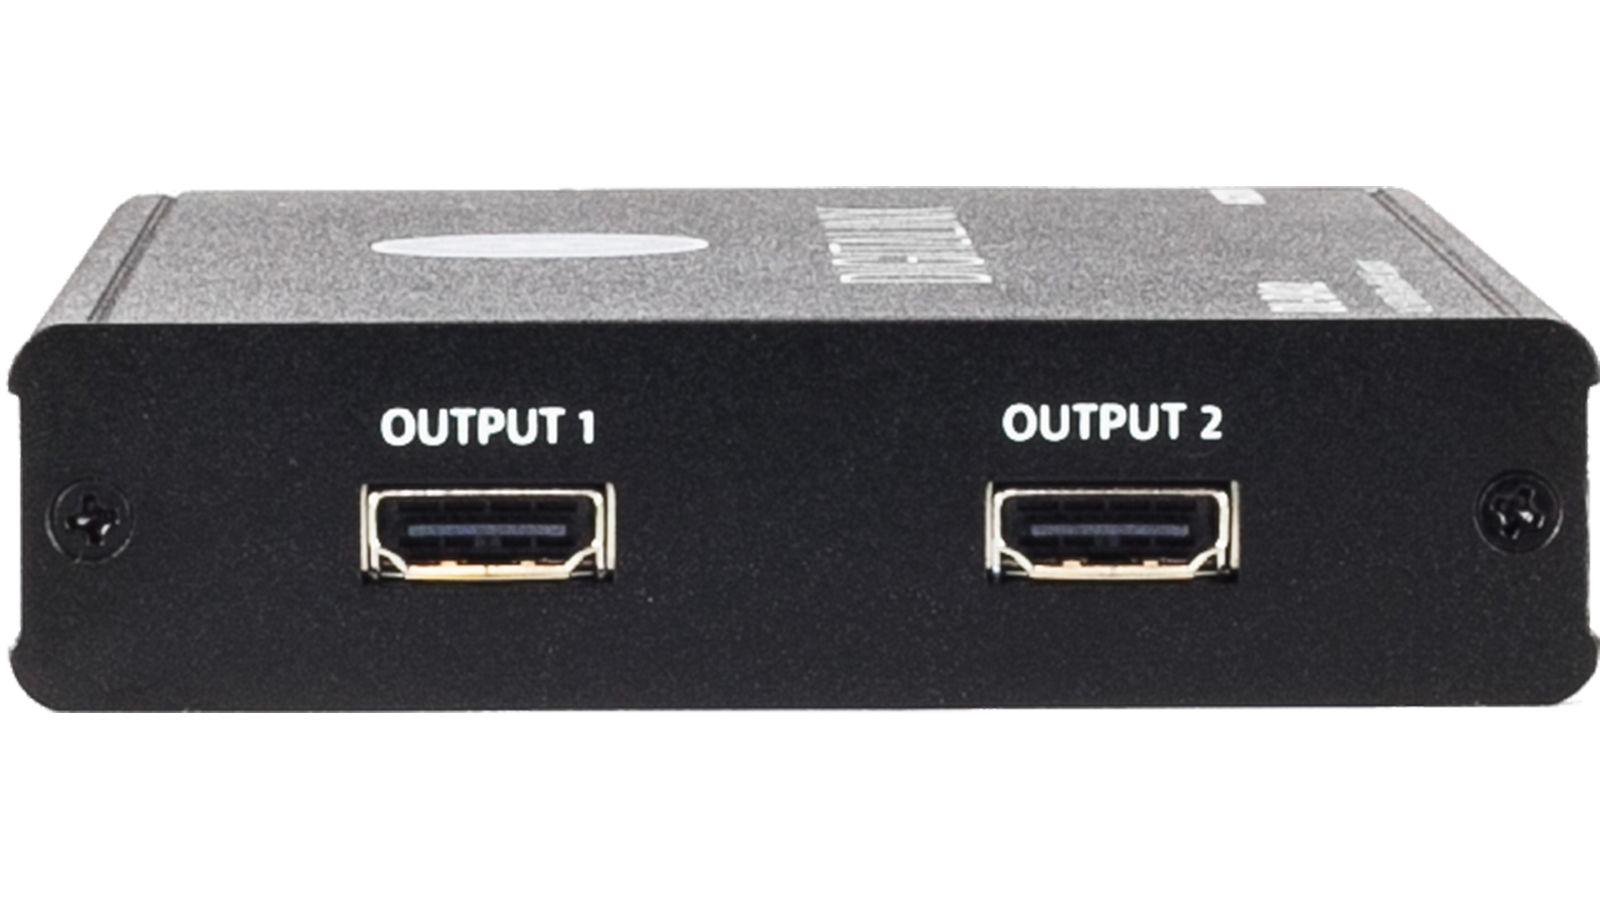 Dl Da12 Hdmi Distribution Amp With 4k Support 1 Input